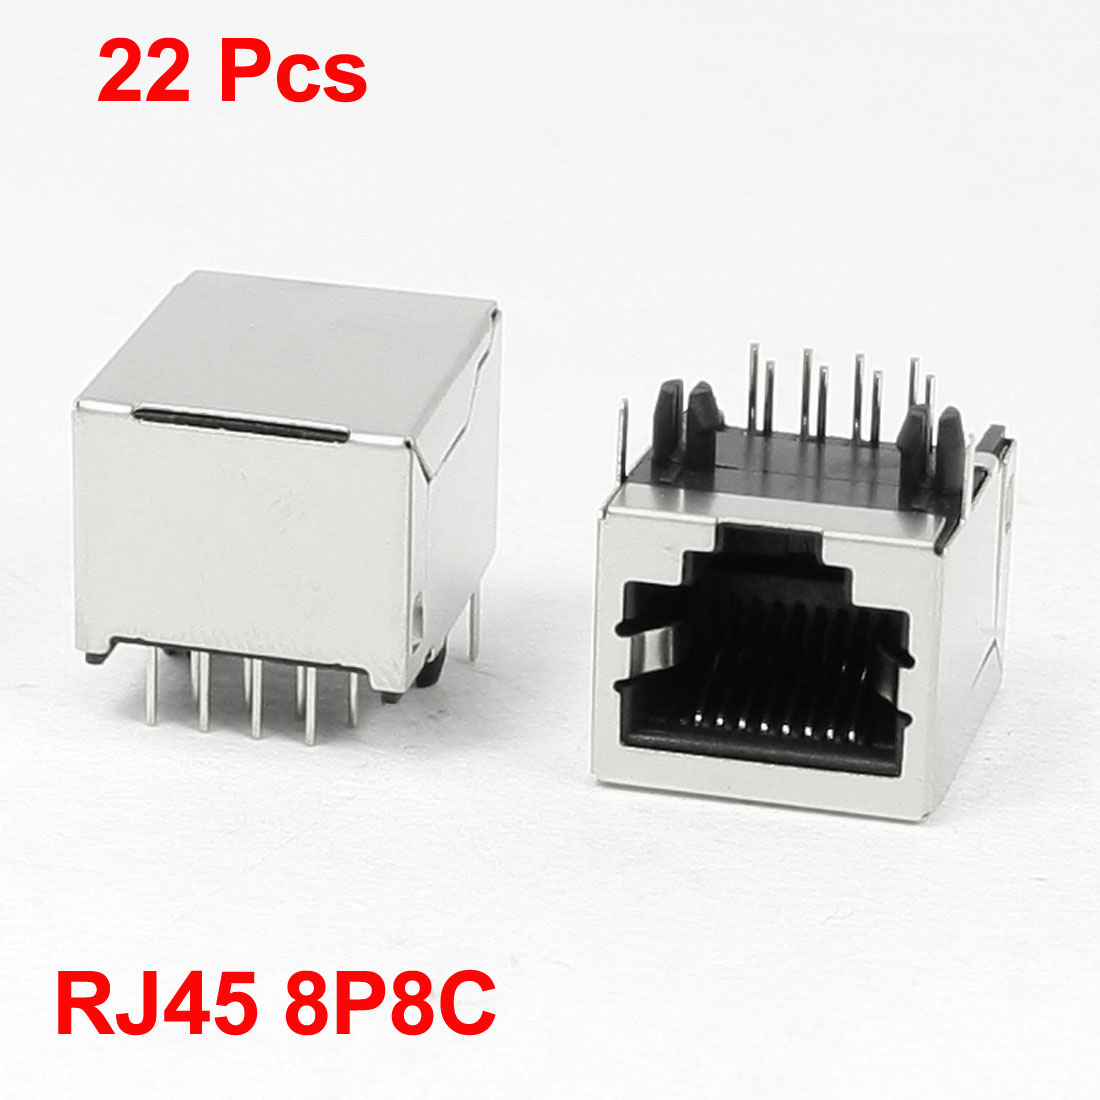 22 Pcs 8Pin RJ45 Modular Network Jack PCB Port 18 x 16 x 17mm